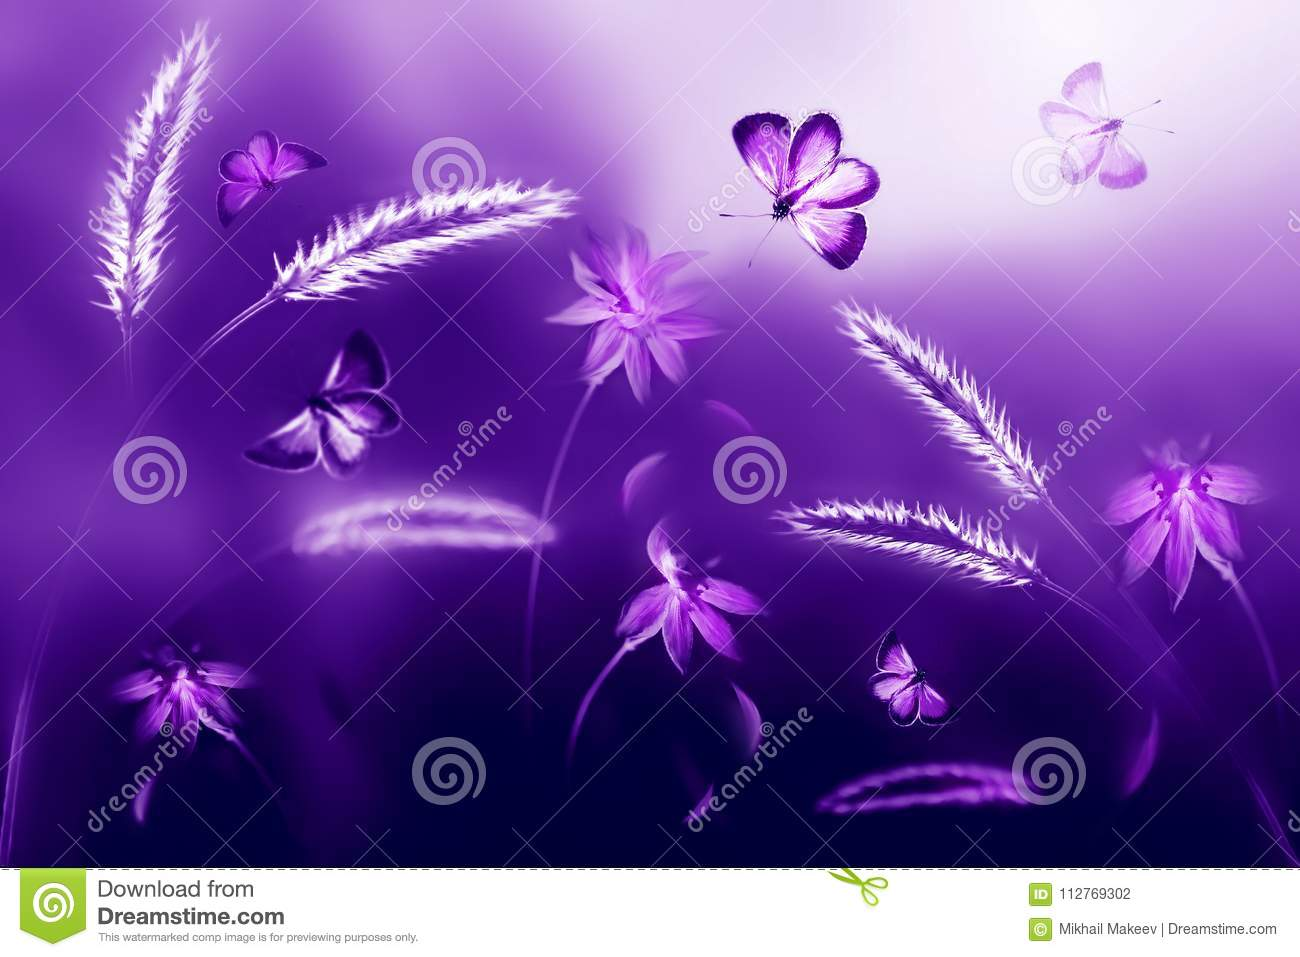 Pink and purple butterflies against a background of wild flowers in purple and violet tones. Artistic ultraviolet natural image.